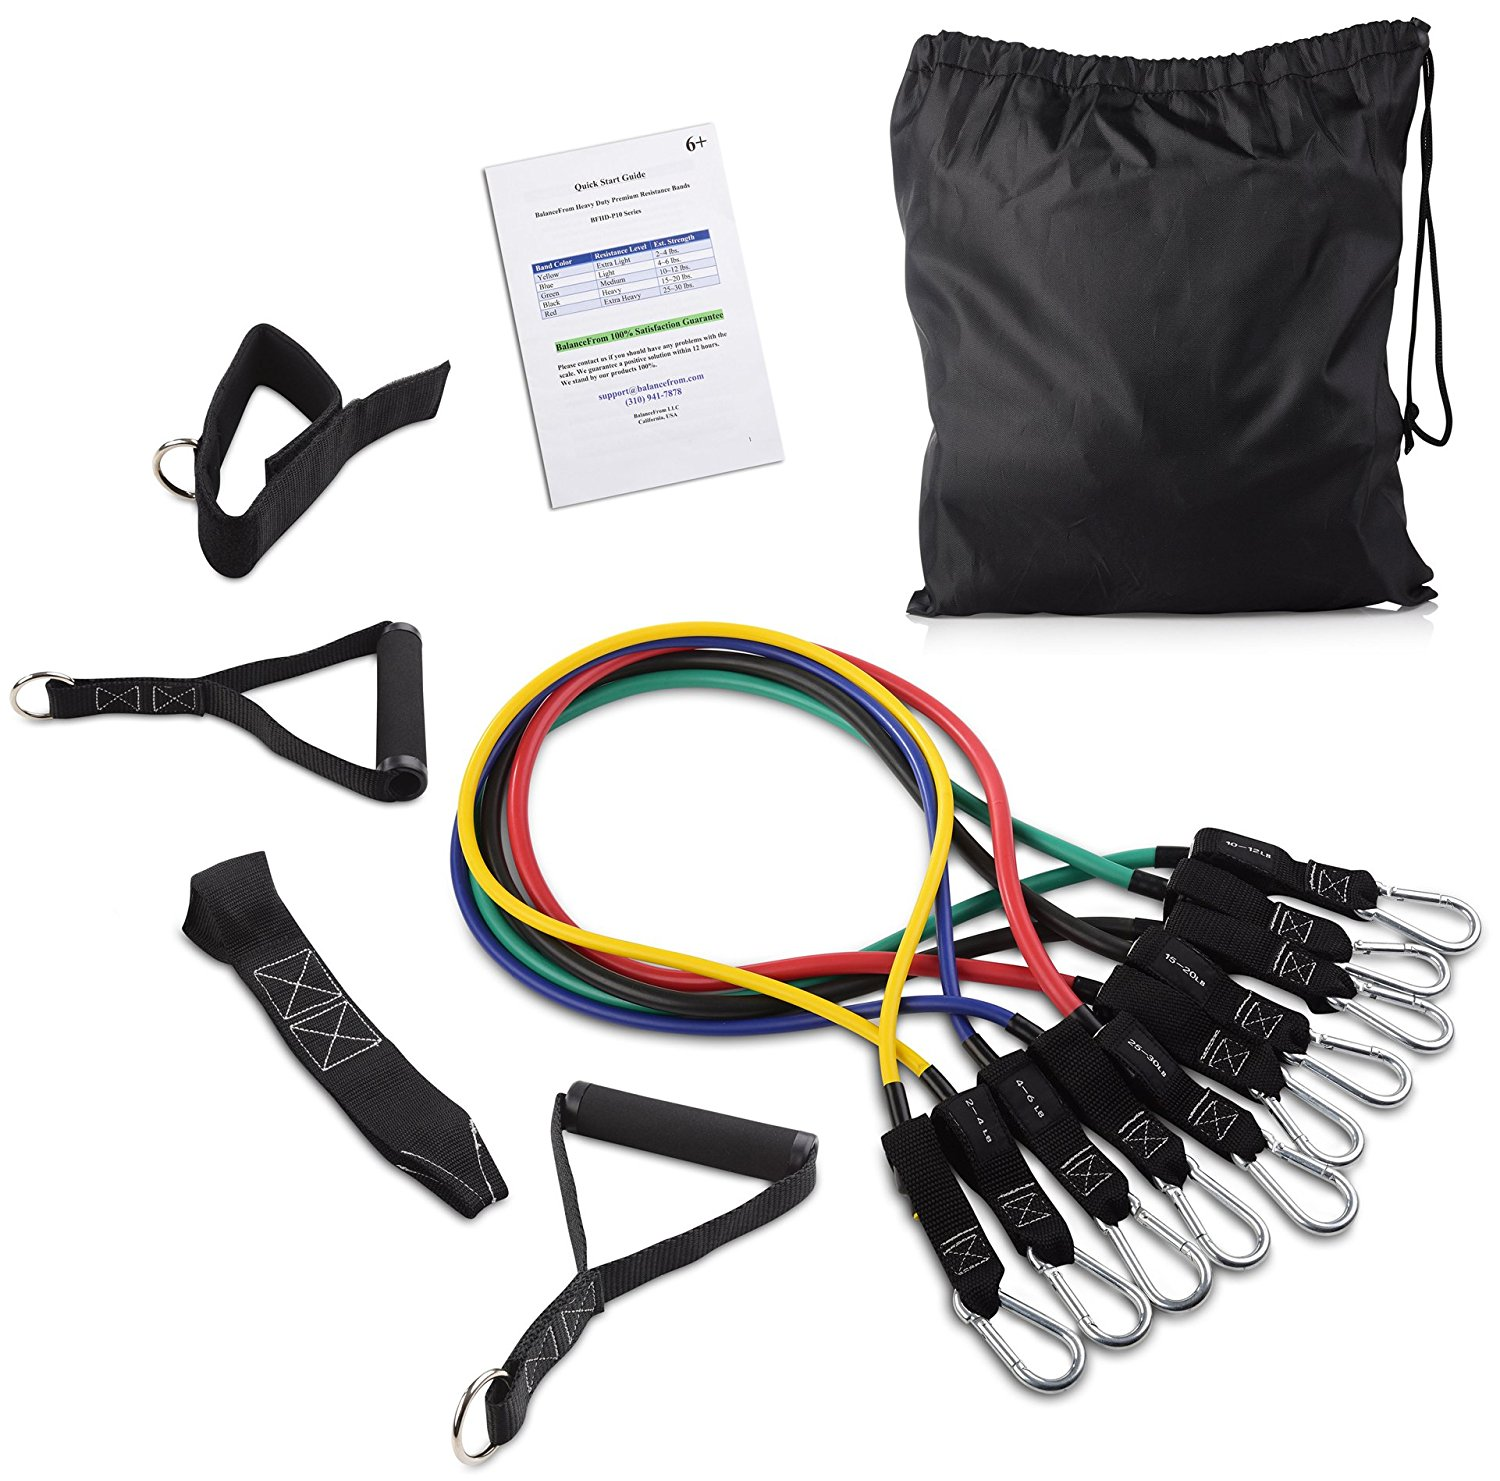 BalanceFrom Gofit All-Purpose Exercise Kit (Resistance Bands, Resistance Loops, Jump Rope and Exercise Sliders)